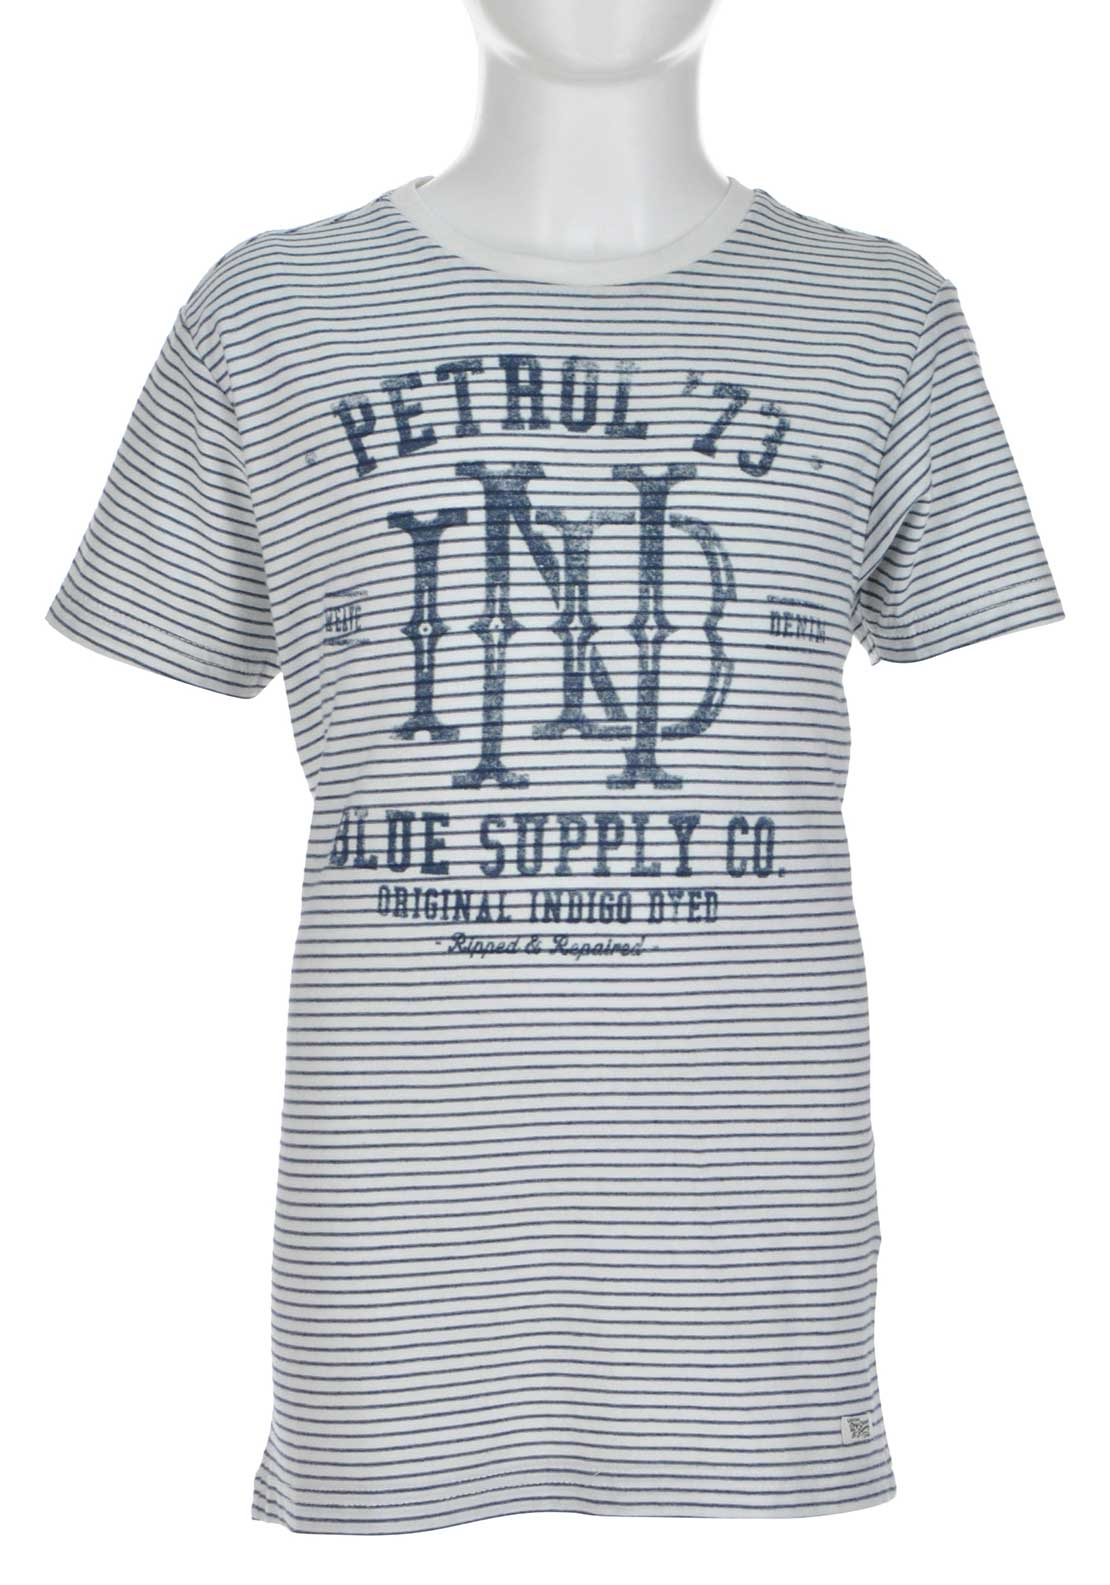 Petrol Industries Striped Printed T-Shirt, White